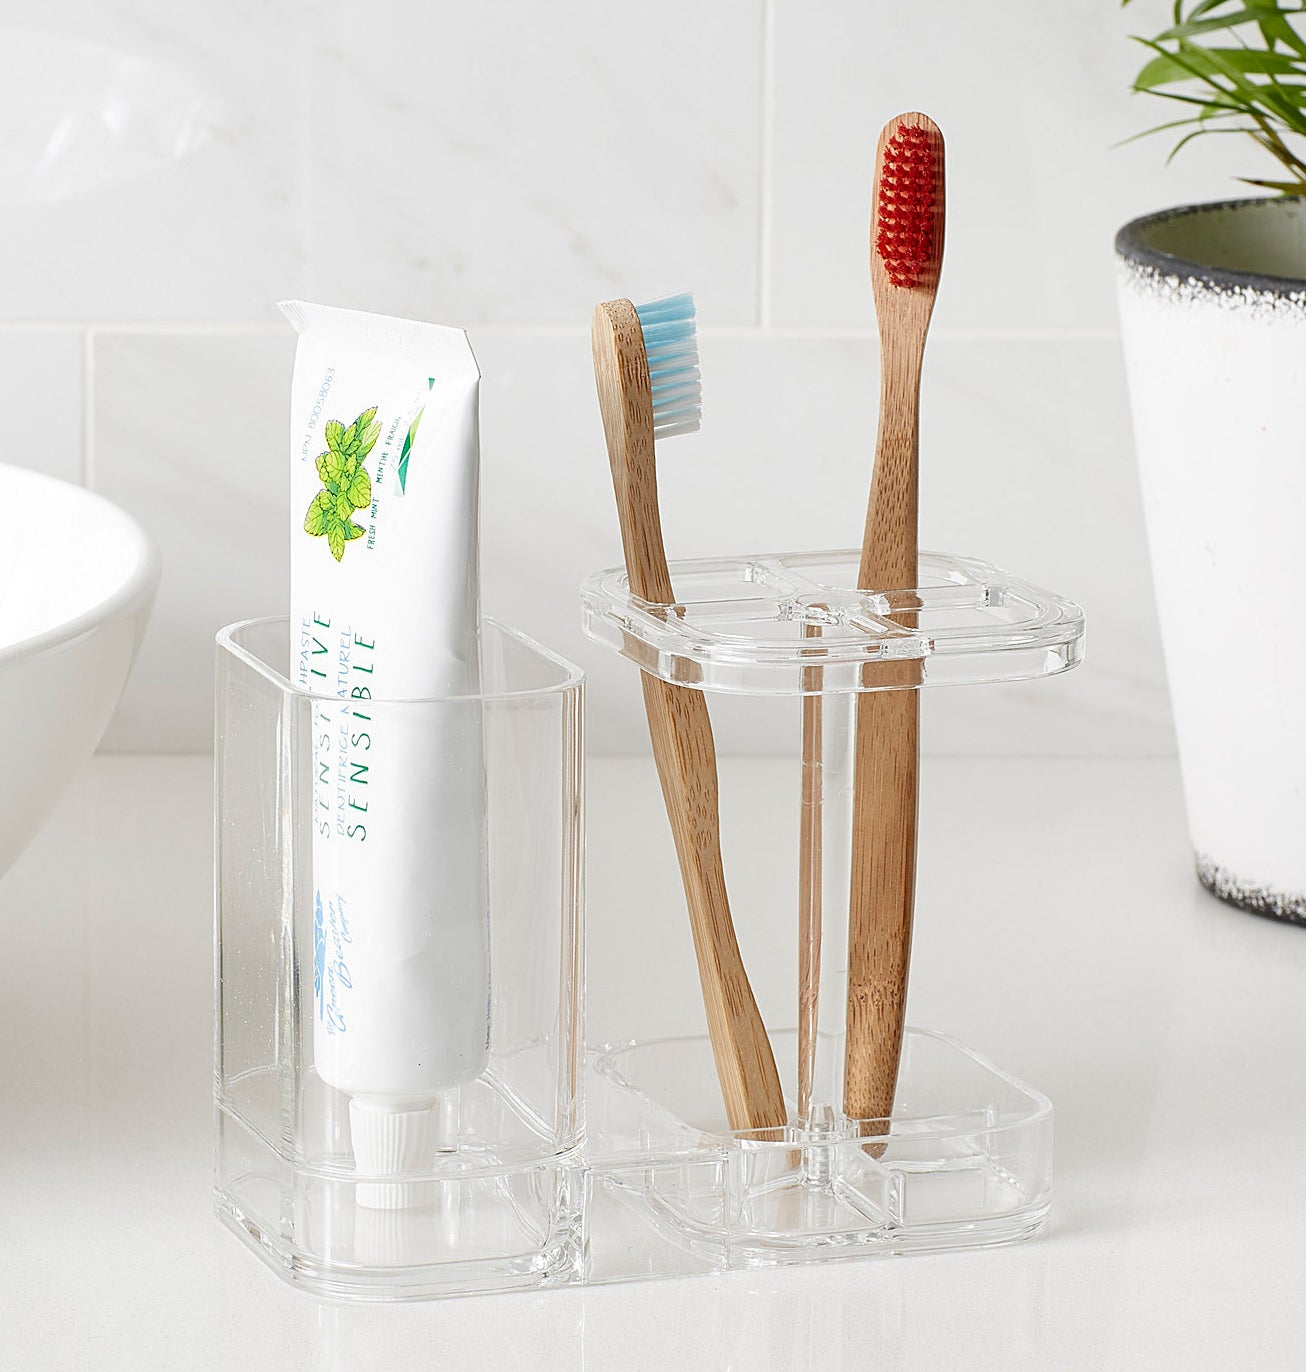 The bathroom organizer with toothbrushes and toothpaste inside of it